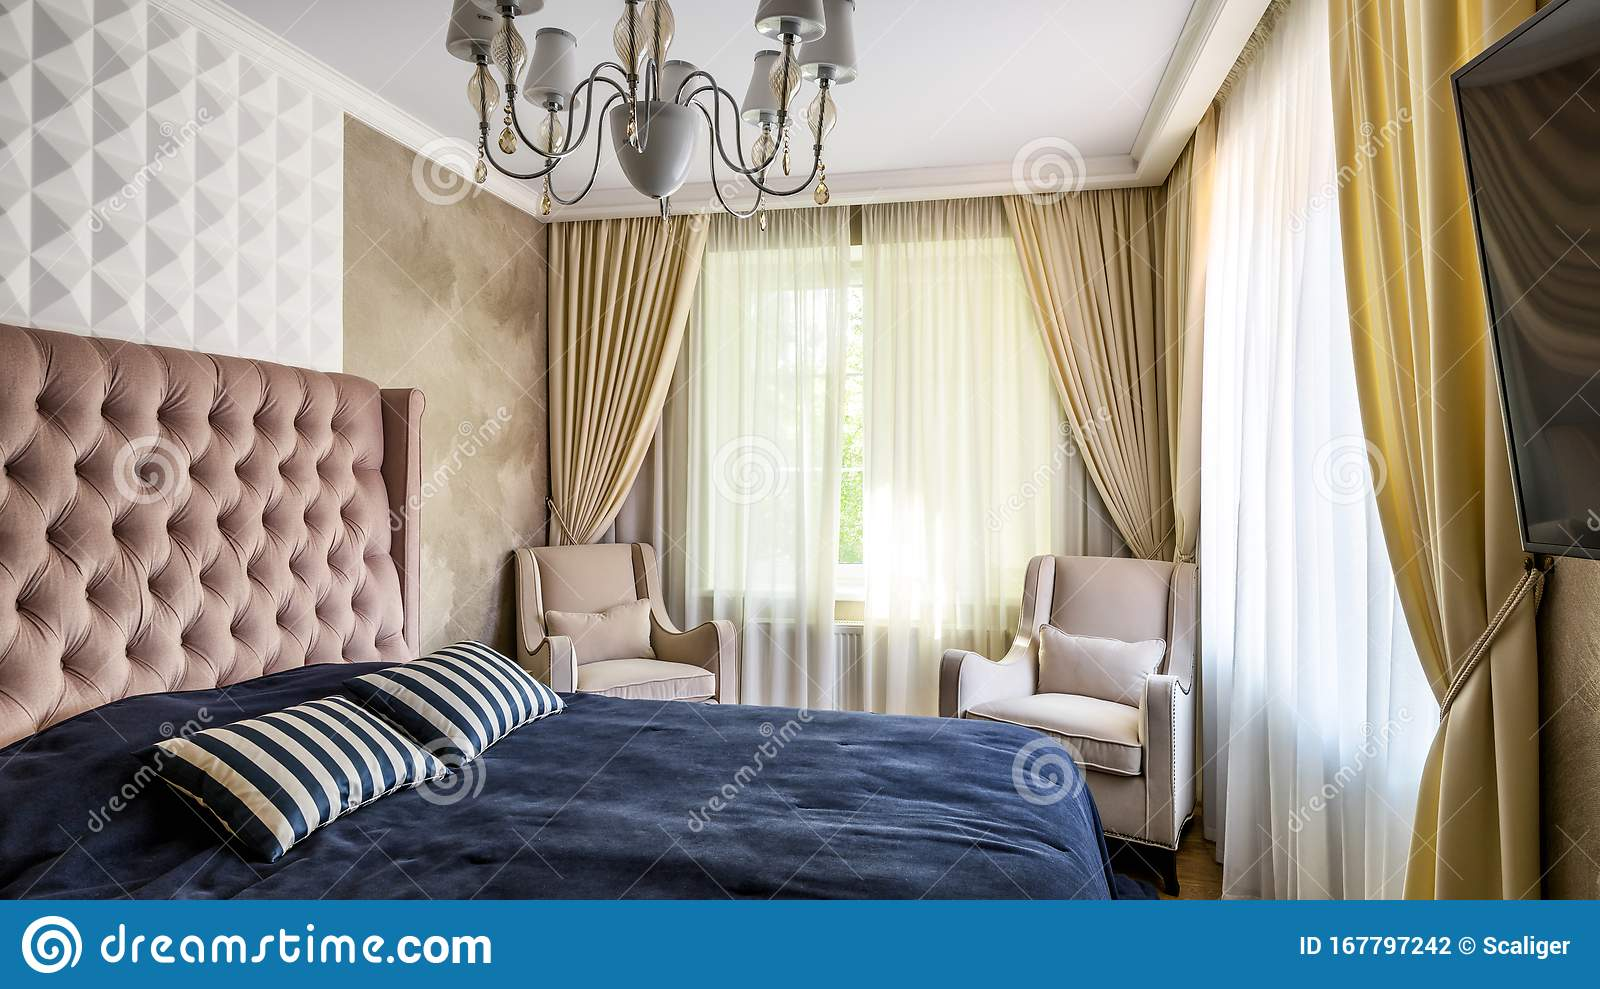 Plain Cozy Bedroom Interior In Pastel Colors Interior Of Hotel Or Home With Bed And Armchairs Editorial Photography Image Of Hotel Cover 167797242